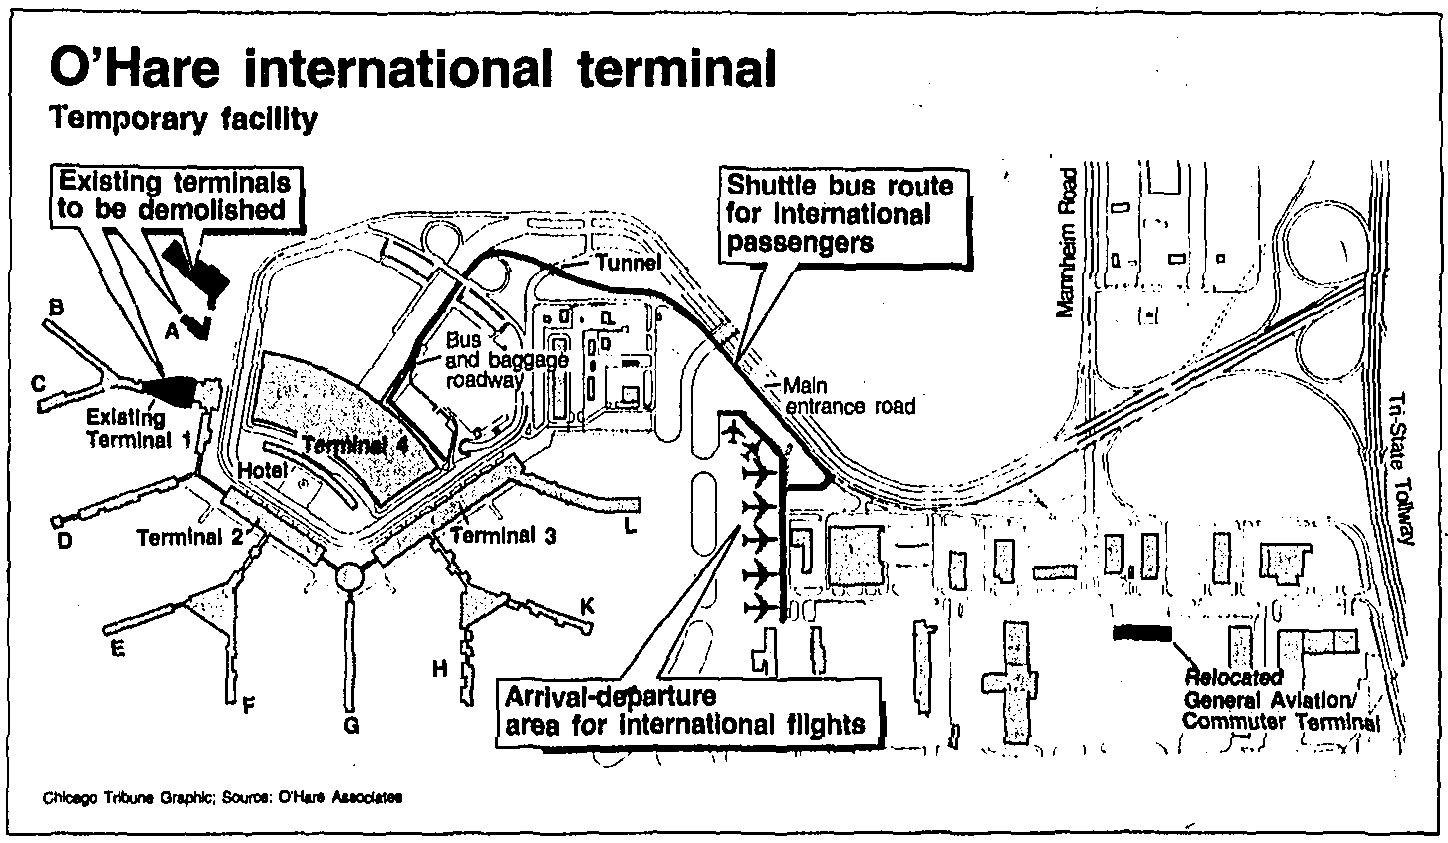 From farmland to 'global terminal': A visual history of O